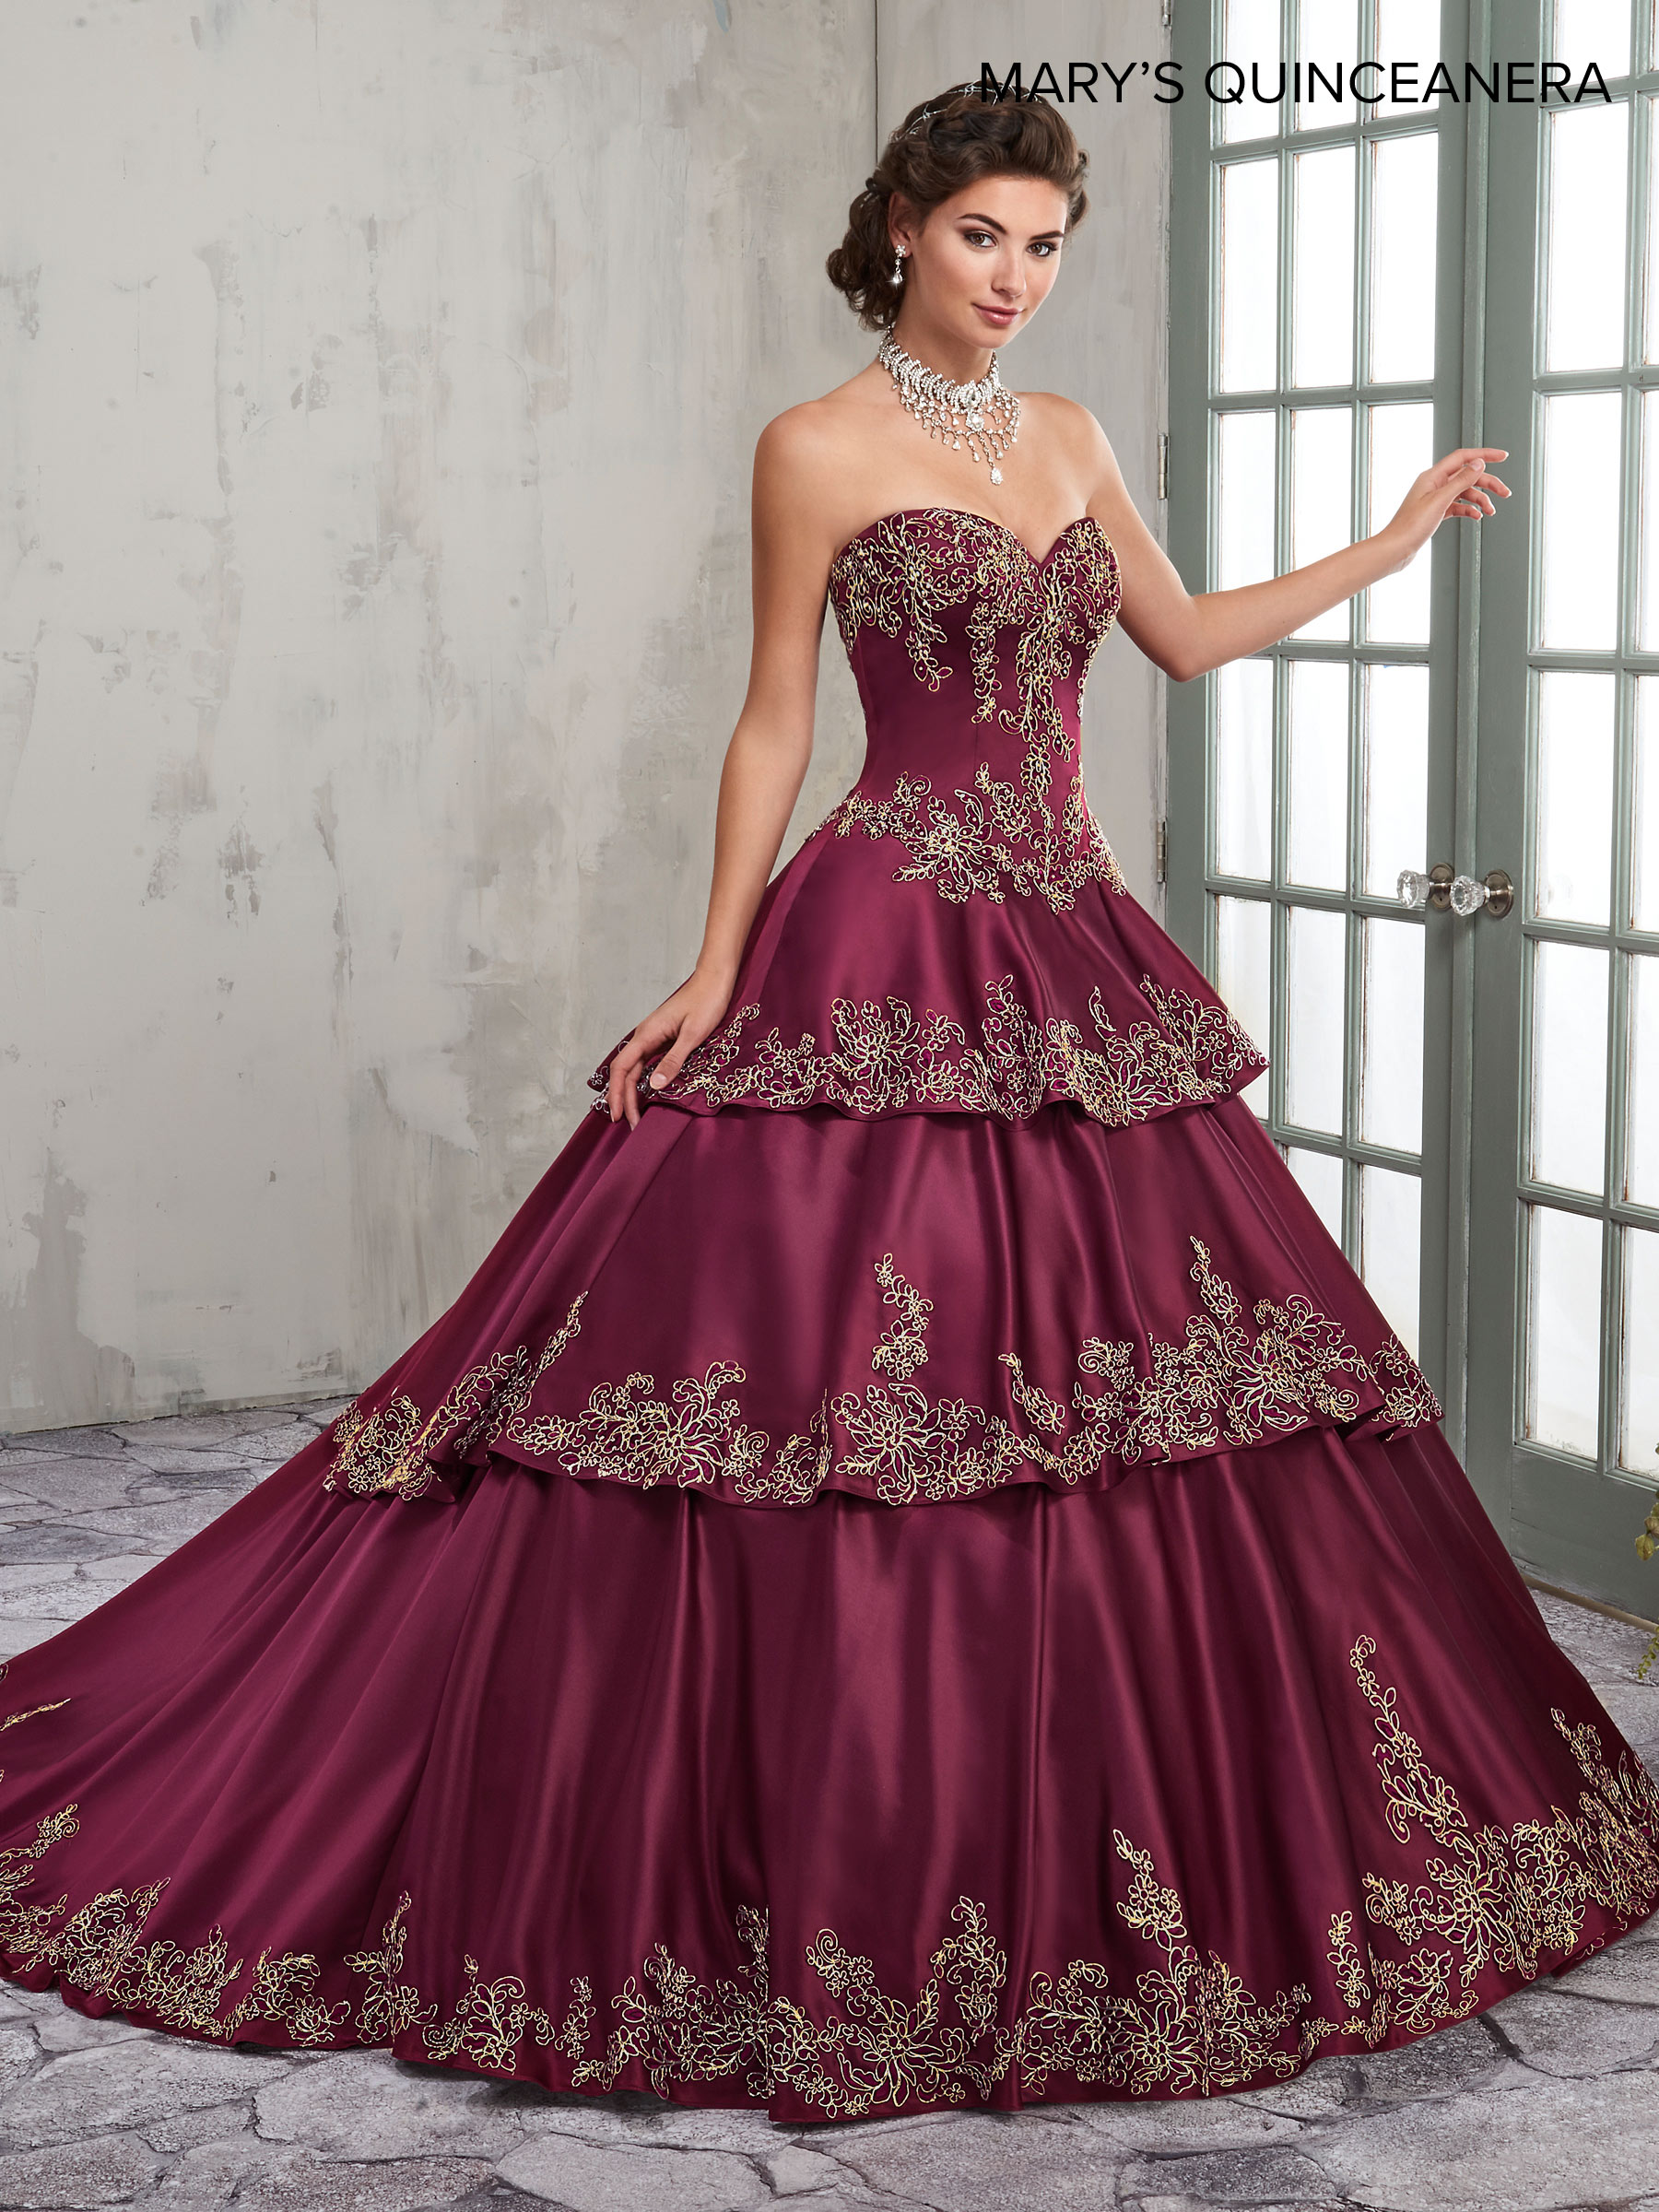 0d21da51338 Marys Quinceanera Dresses